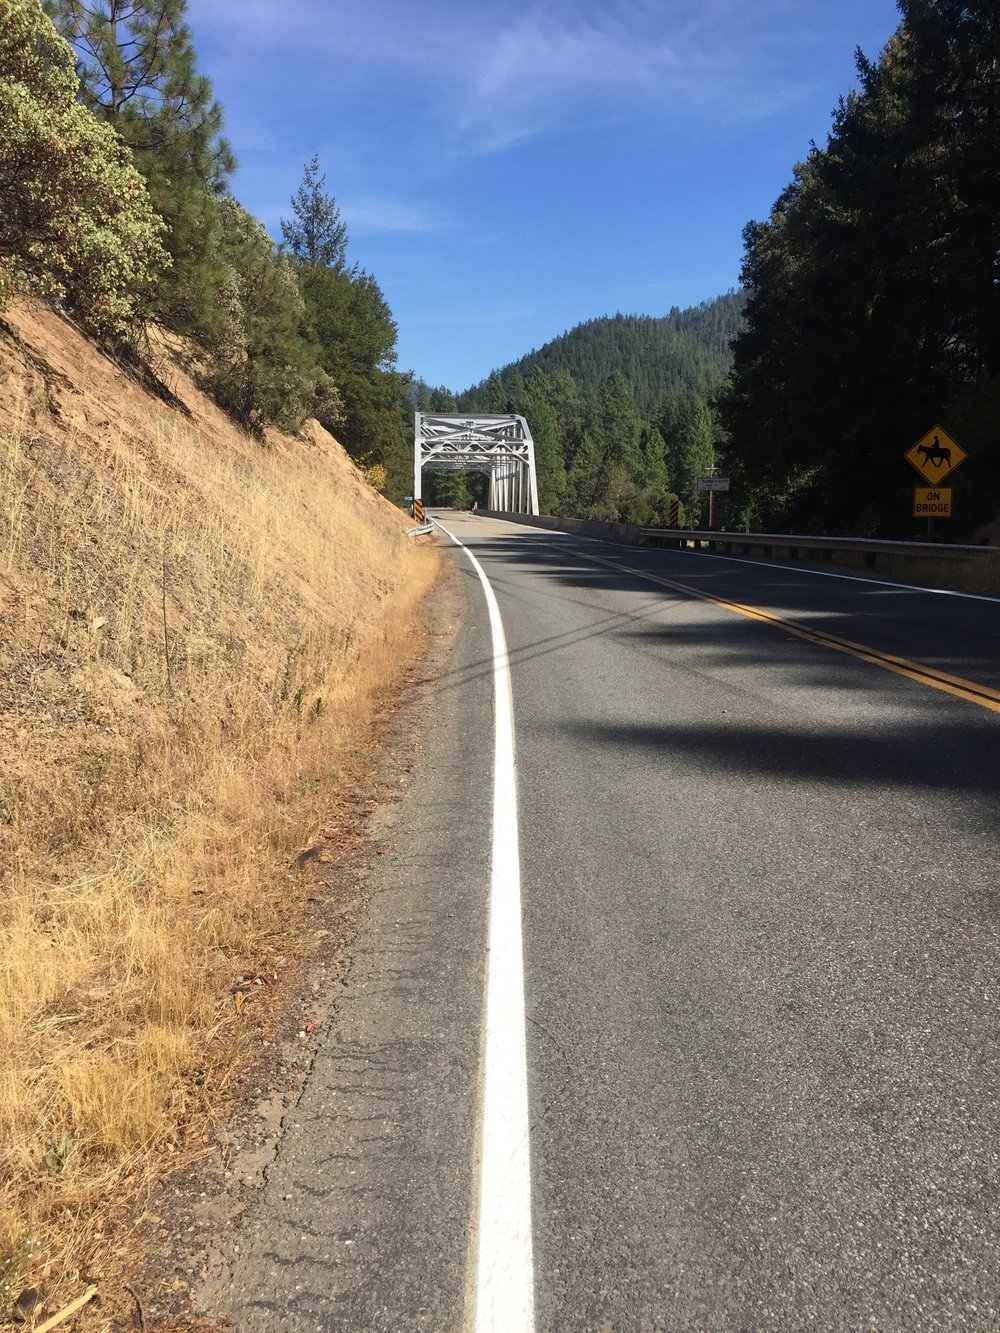 Road-walk on Hwy 96 towards the Klamath River bridge on a hot August day